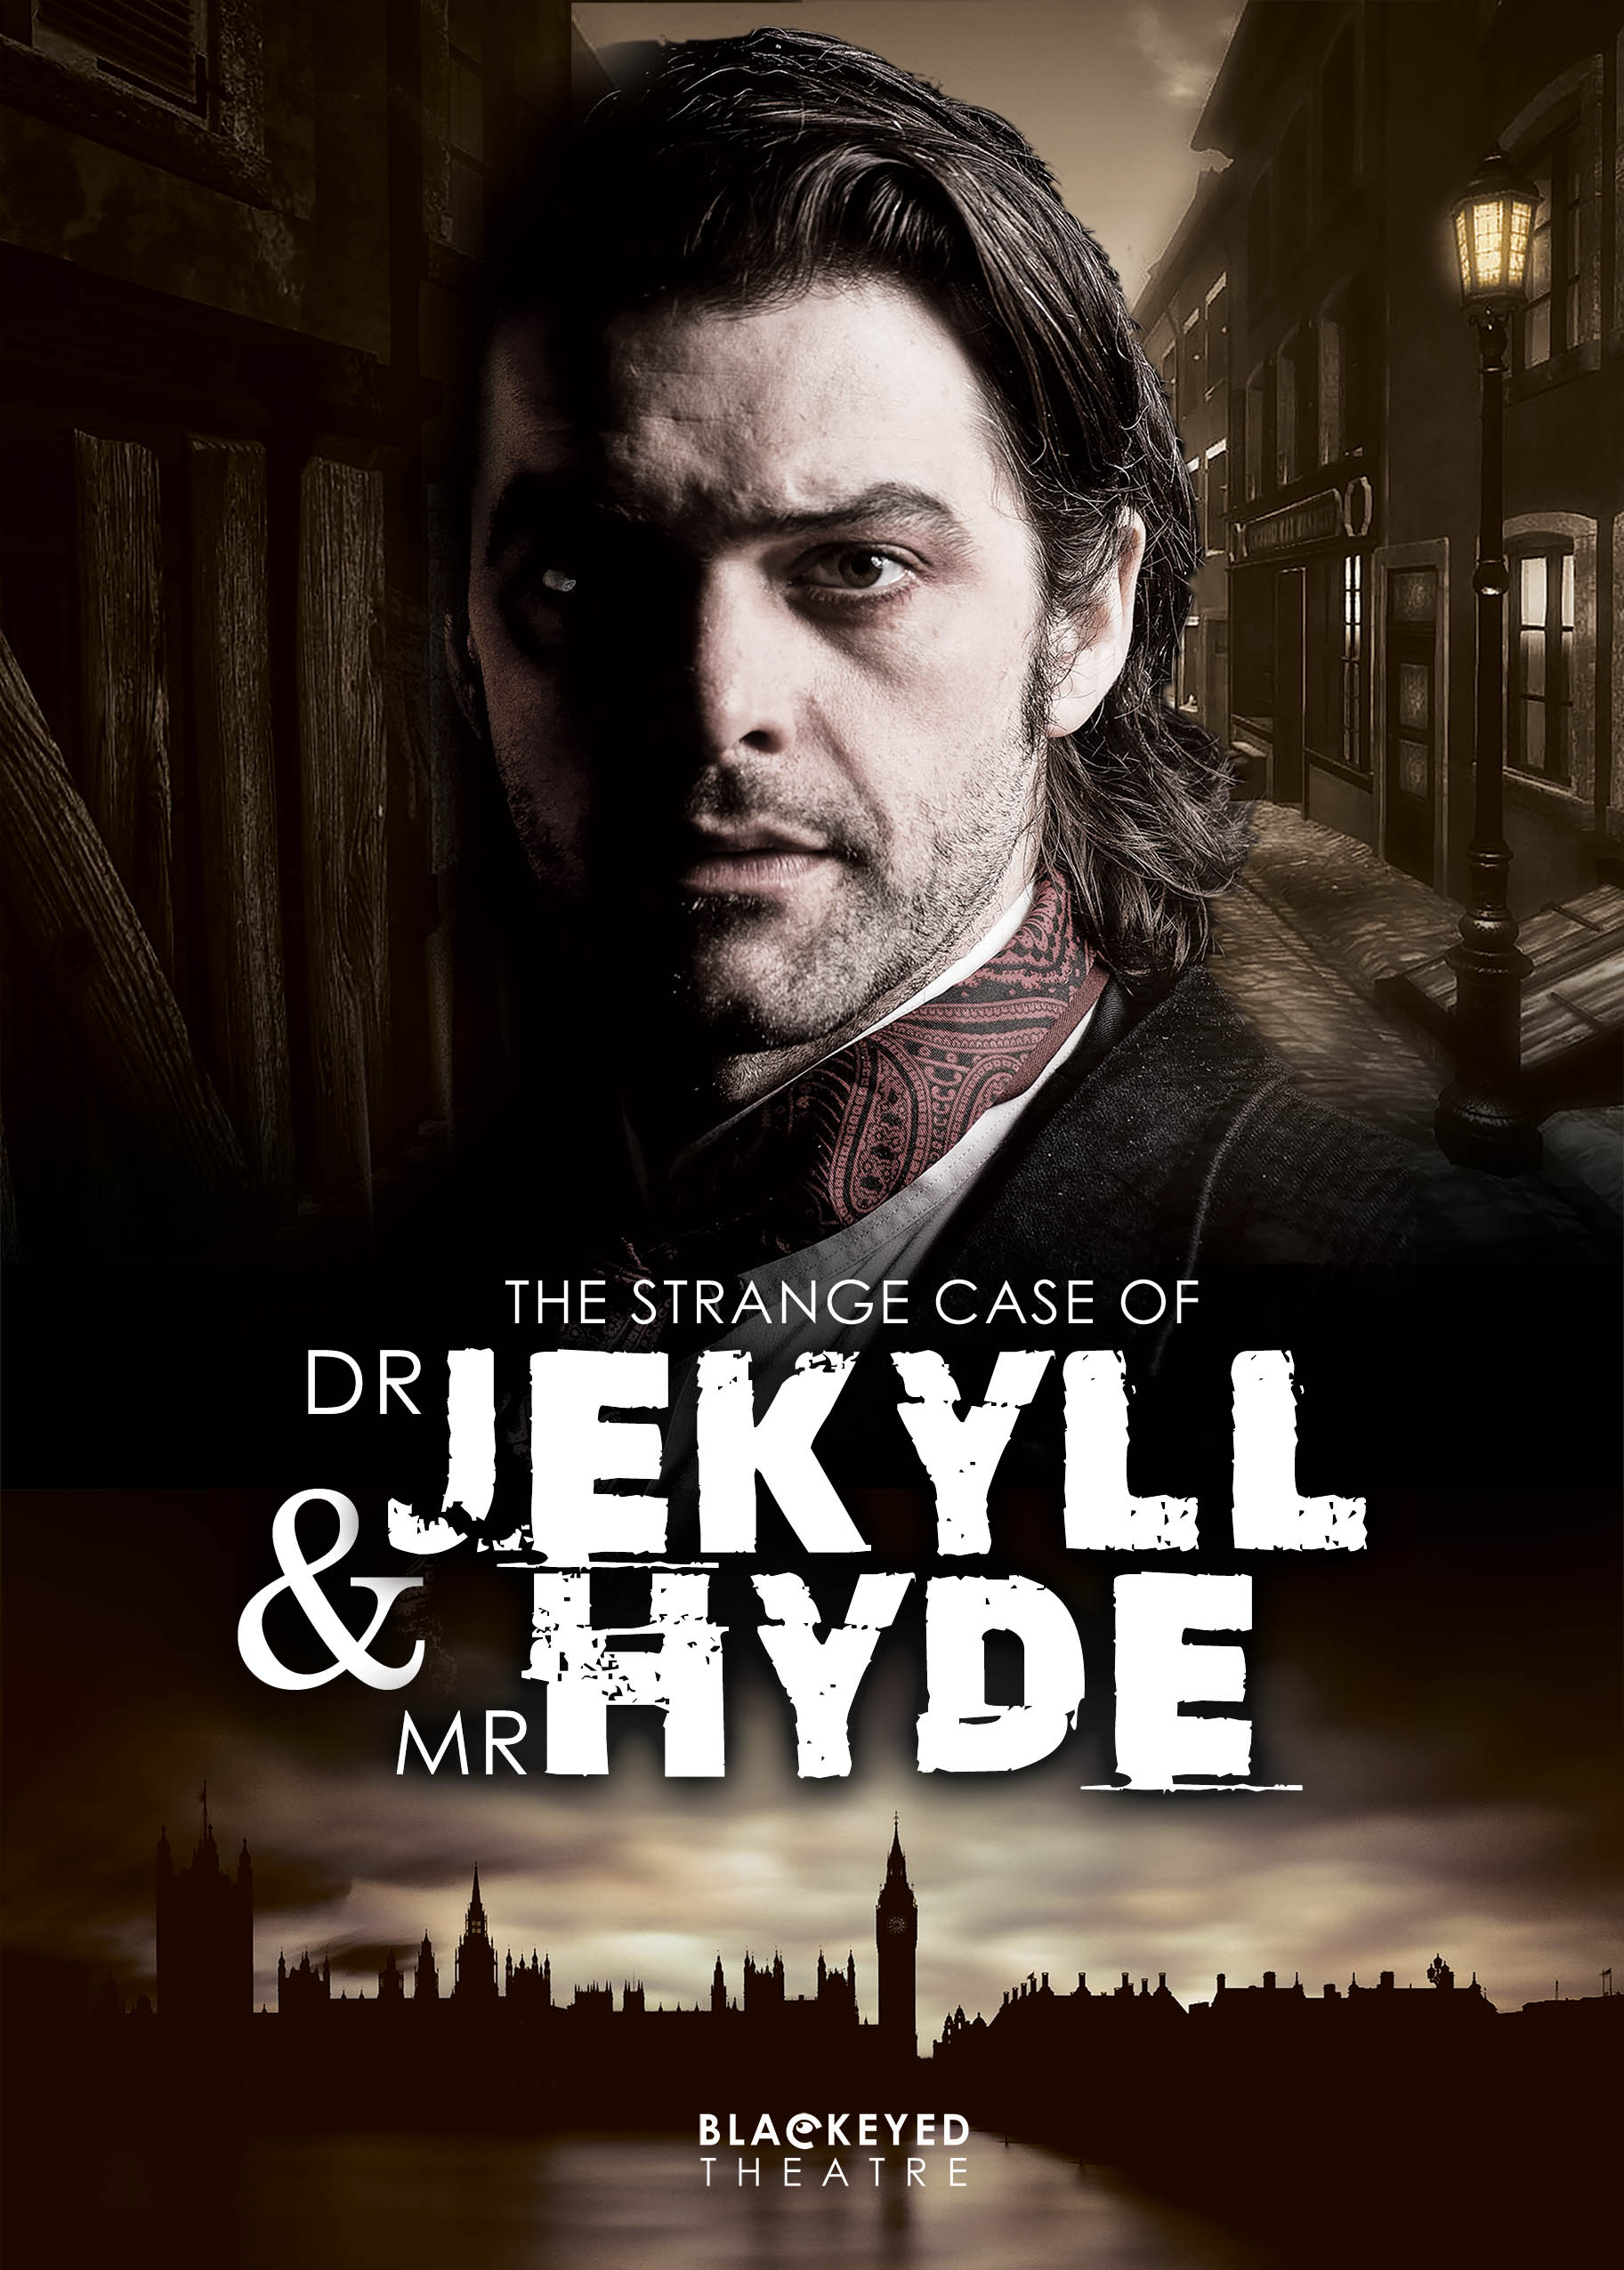 Jekyll & Hyde web poster image